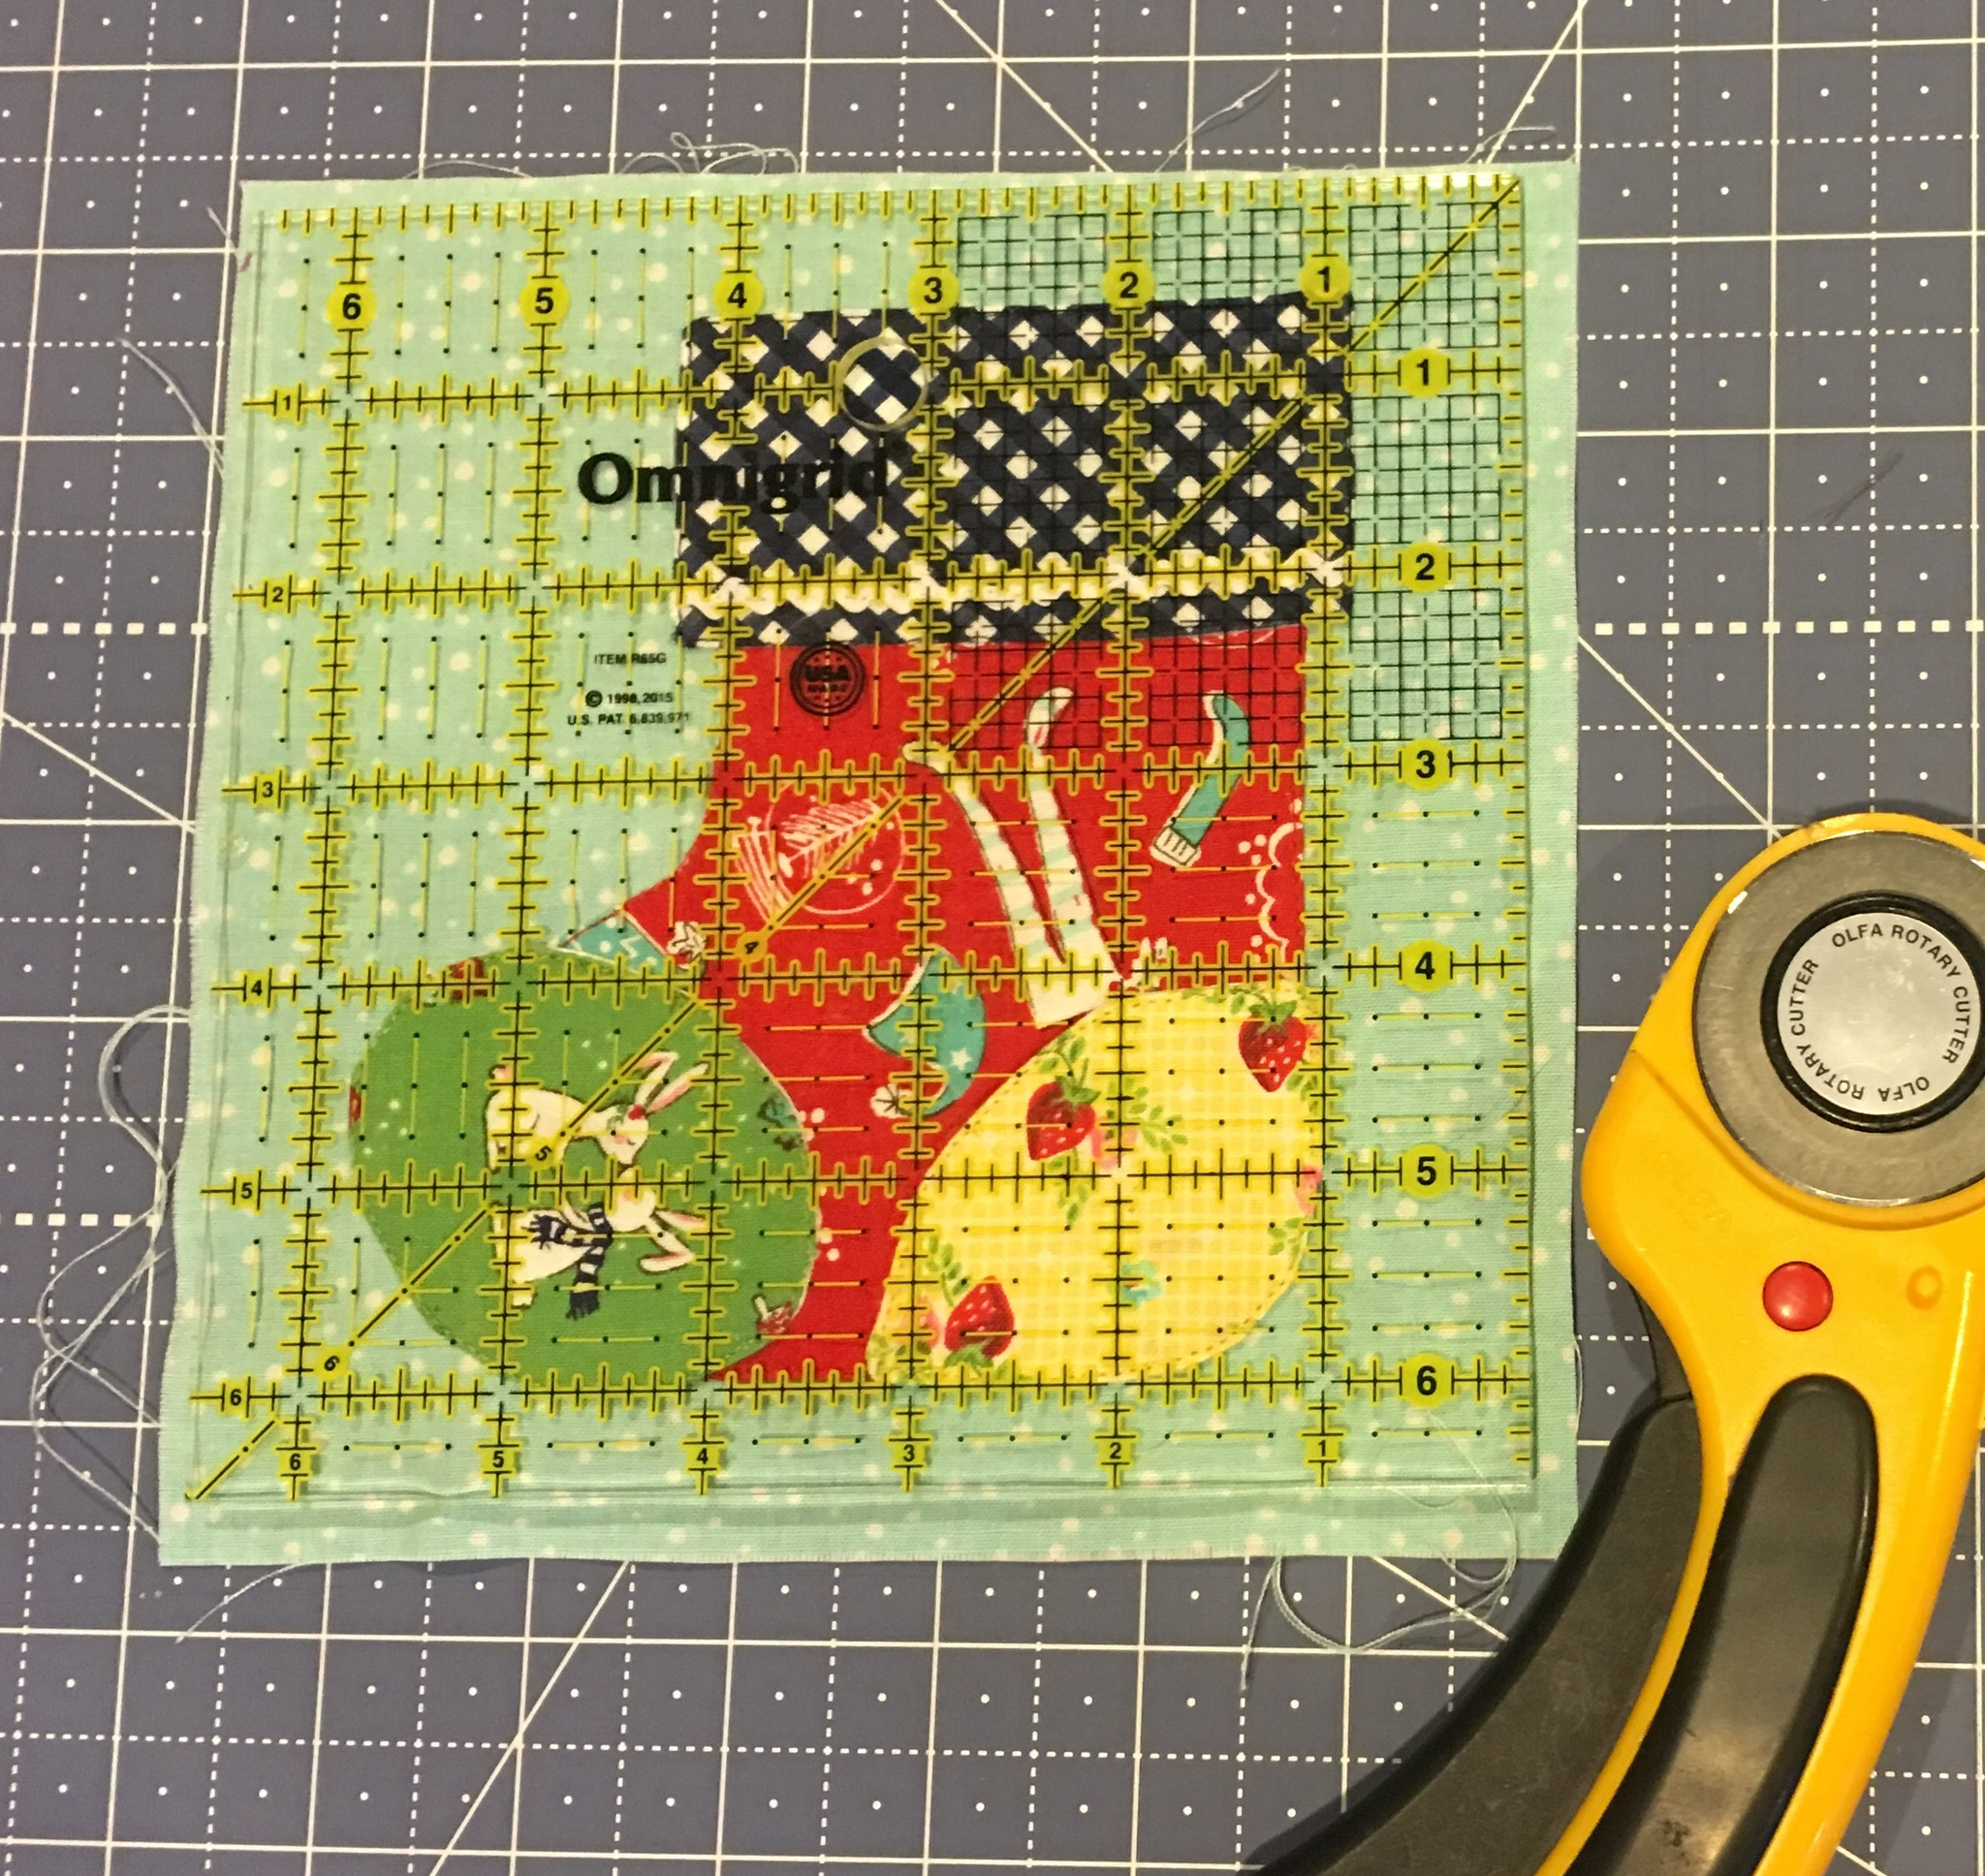 Trimming the appliqué block with an Omnigrid square ruler